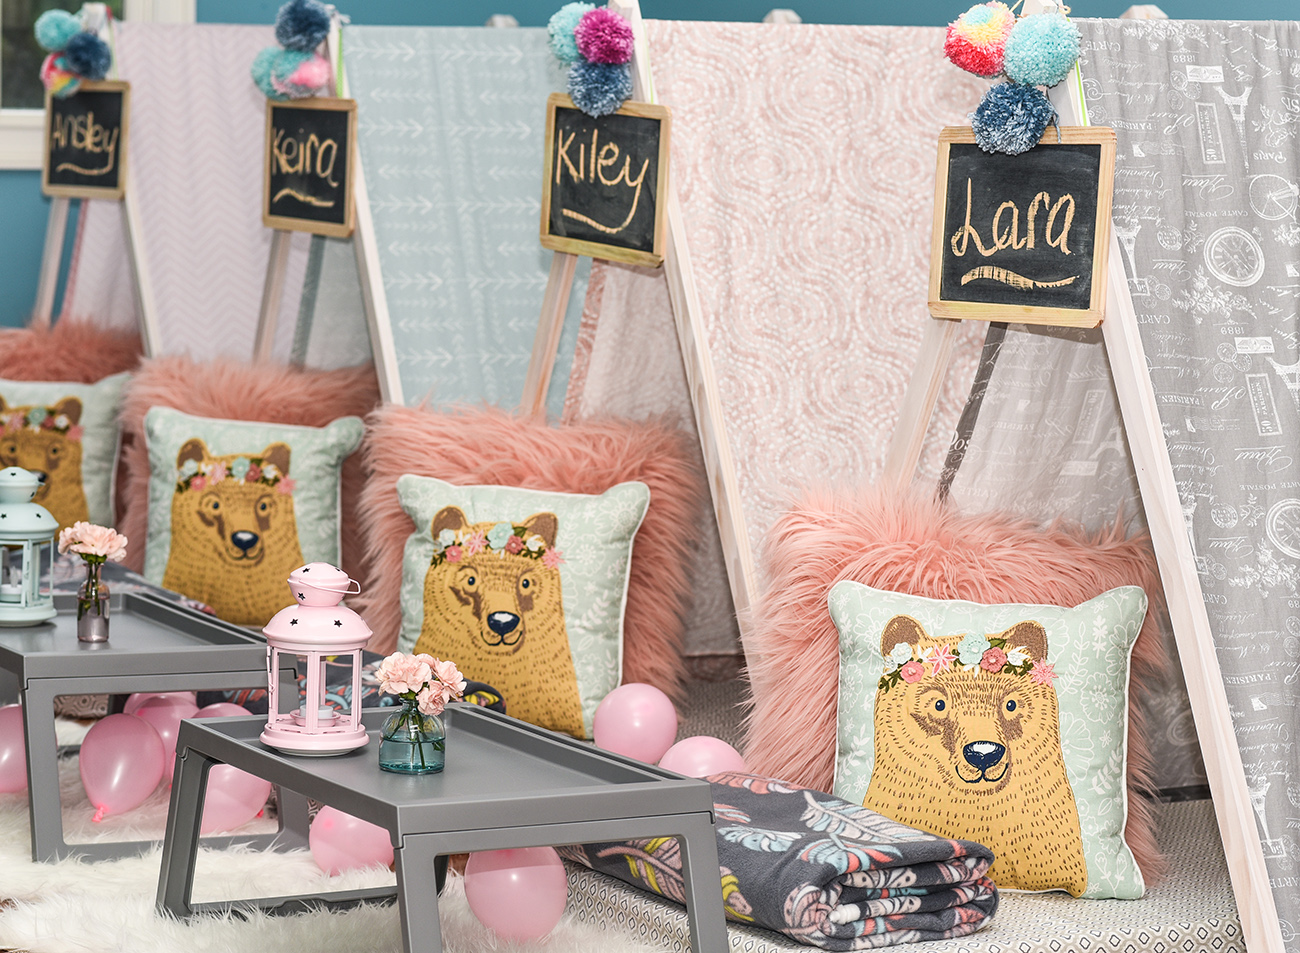 This Charlotte party service sets up an Instagrammable campground in your living room for kids' slumber parties starting at $150